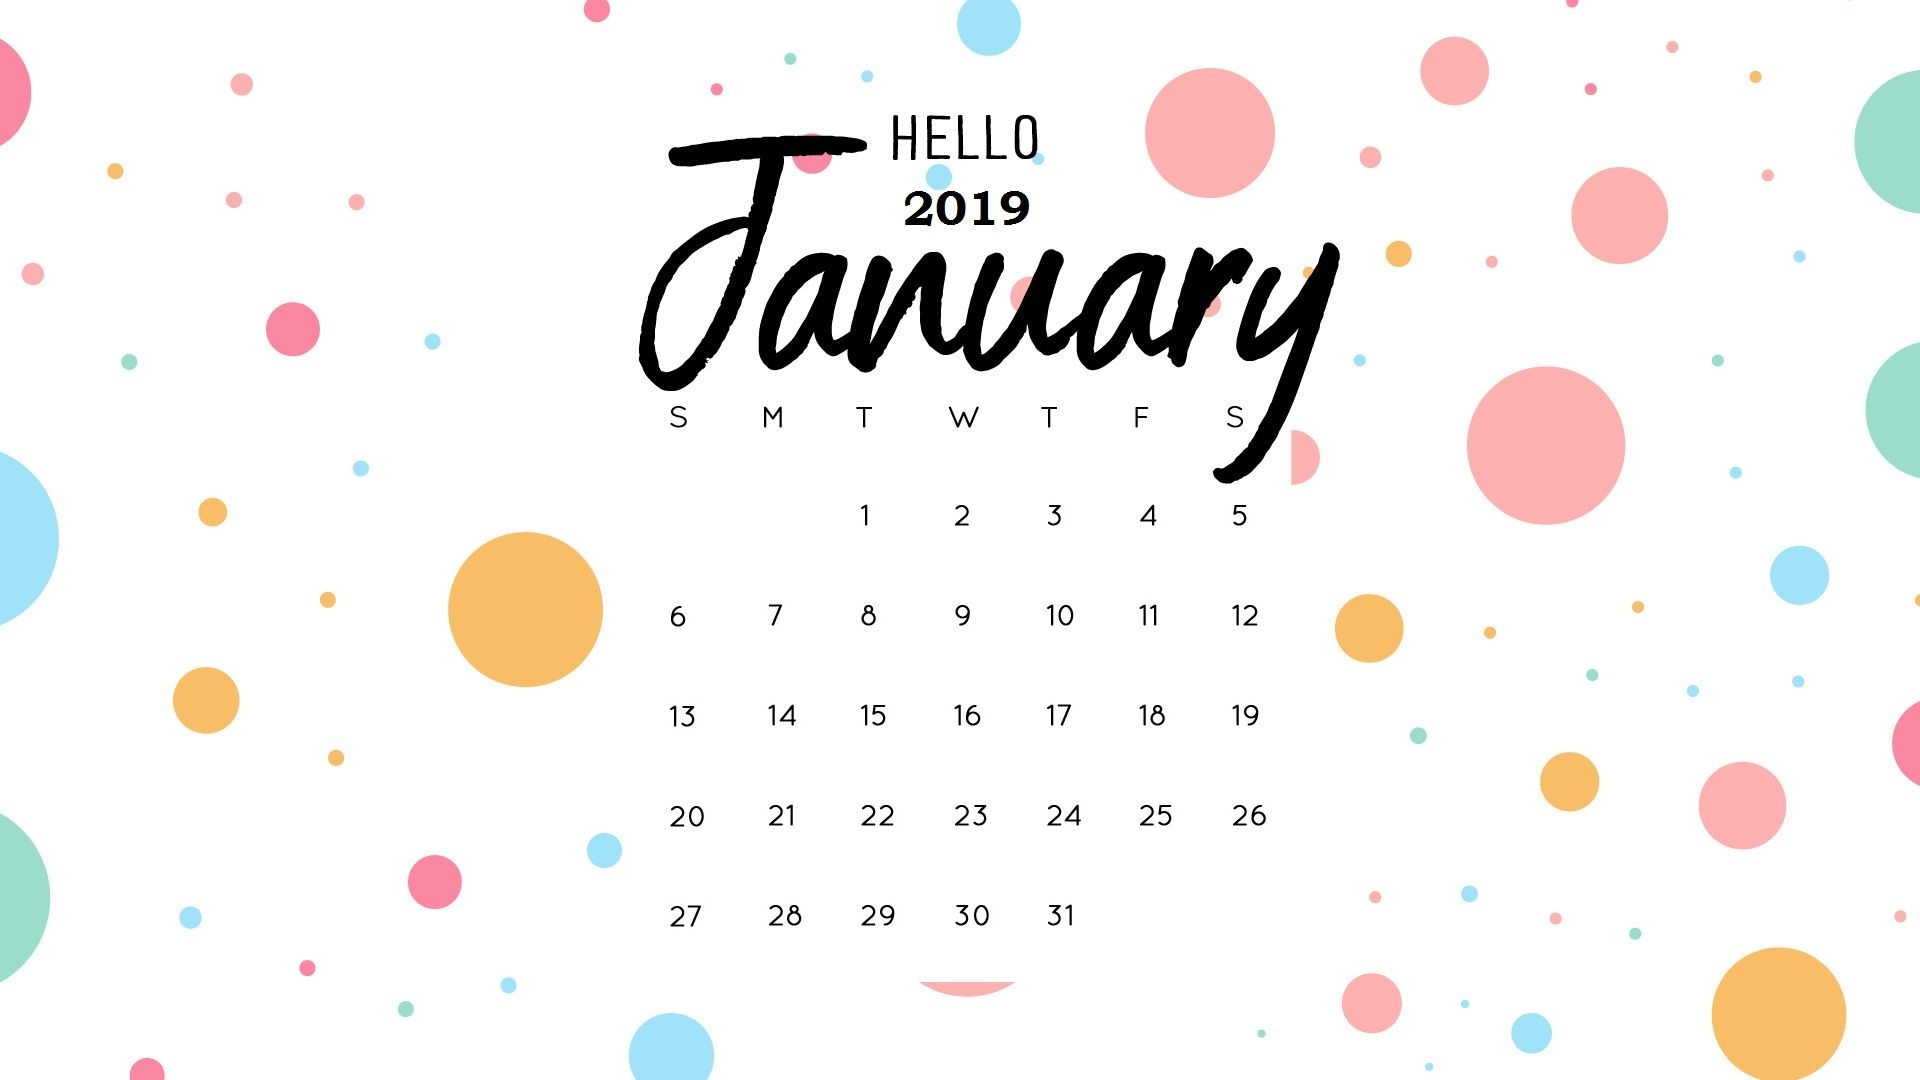 january 2019 calendar in pdf excel word download ::January 2019 Calendar Word